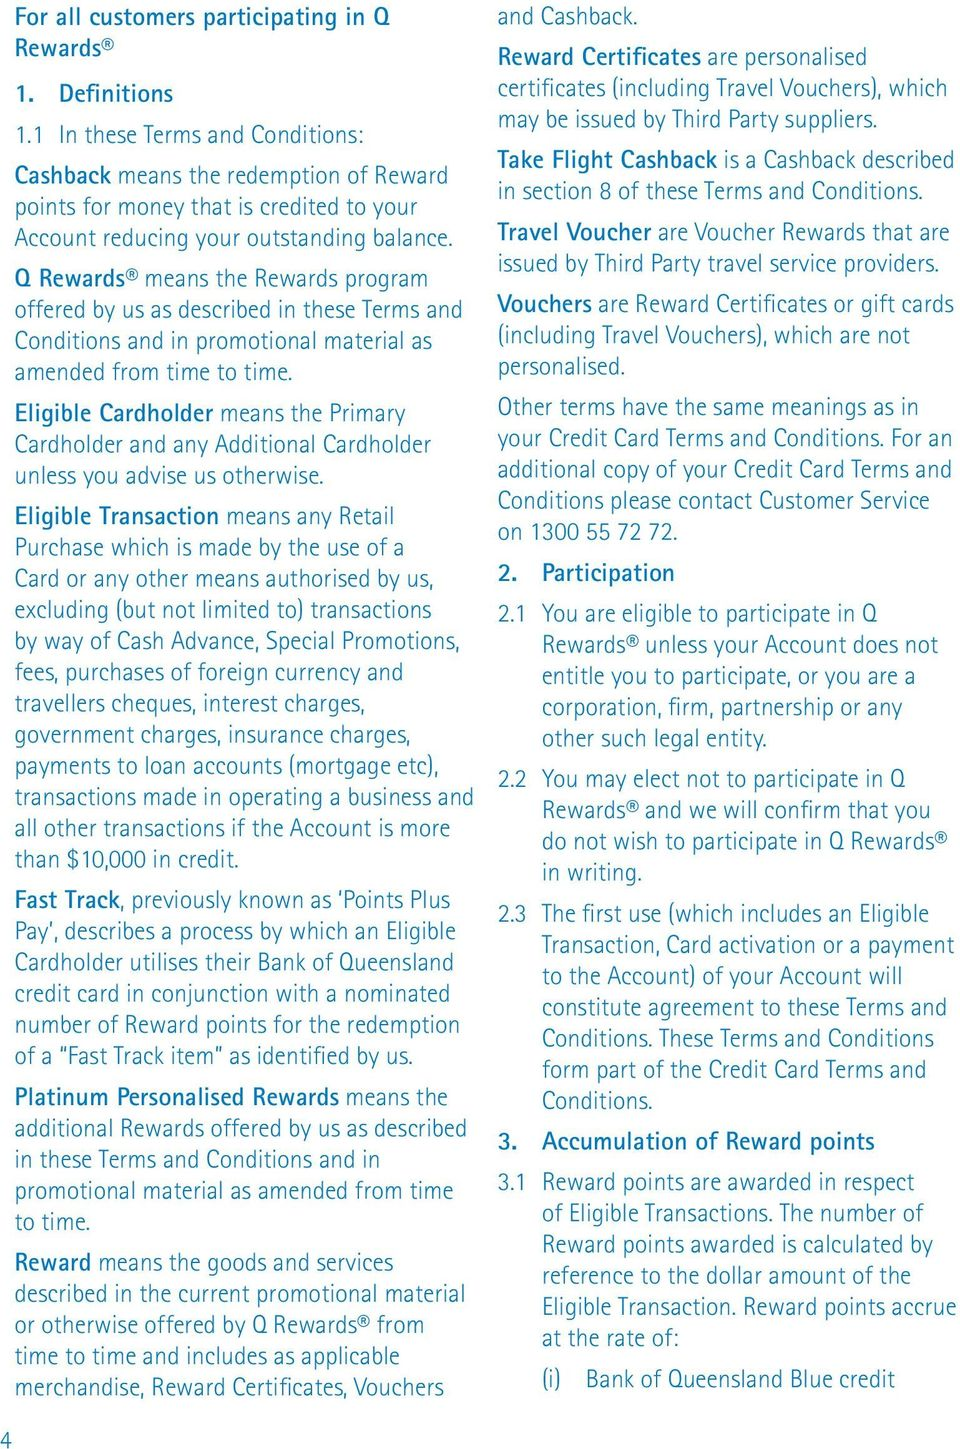 Q Rewards means the Rewards program offered by us as described in these Terms and Conditions and in promotional material as amended from time to time.